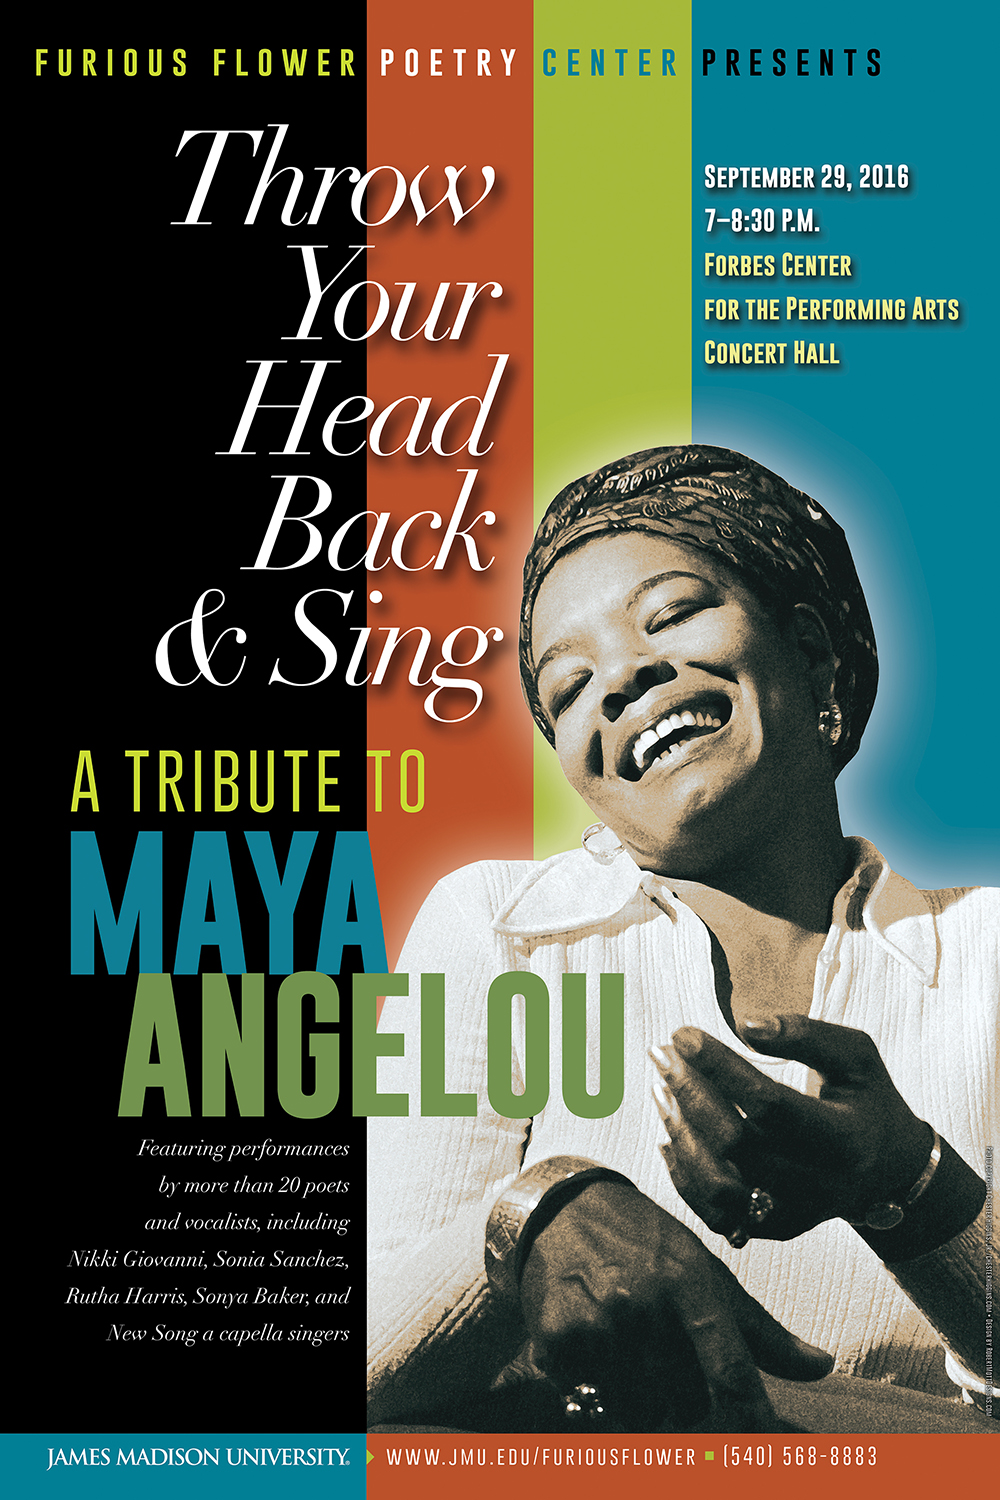 Tribute to Maya Angelou | Furious Flower Poetry Center